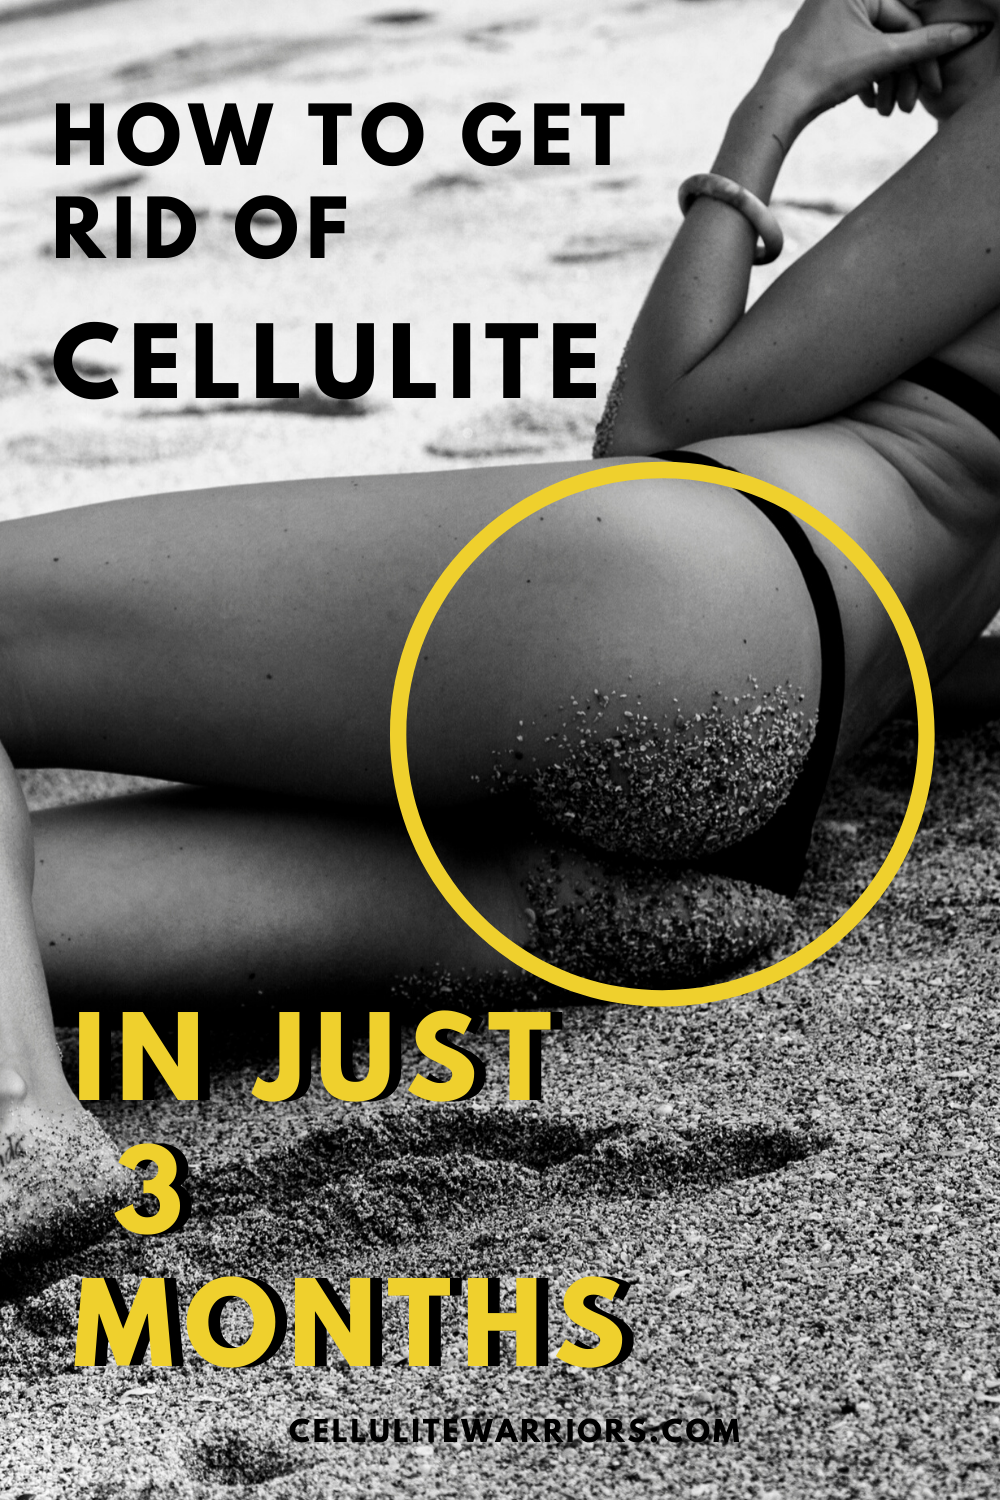 How To Get Rid Of Cellulite In 3 Months